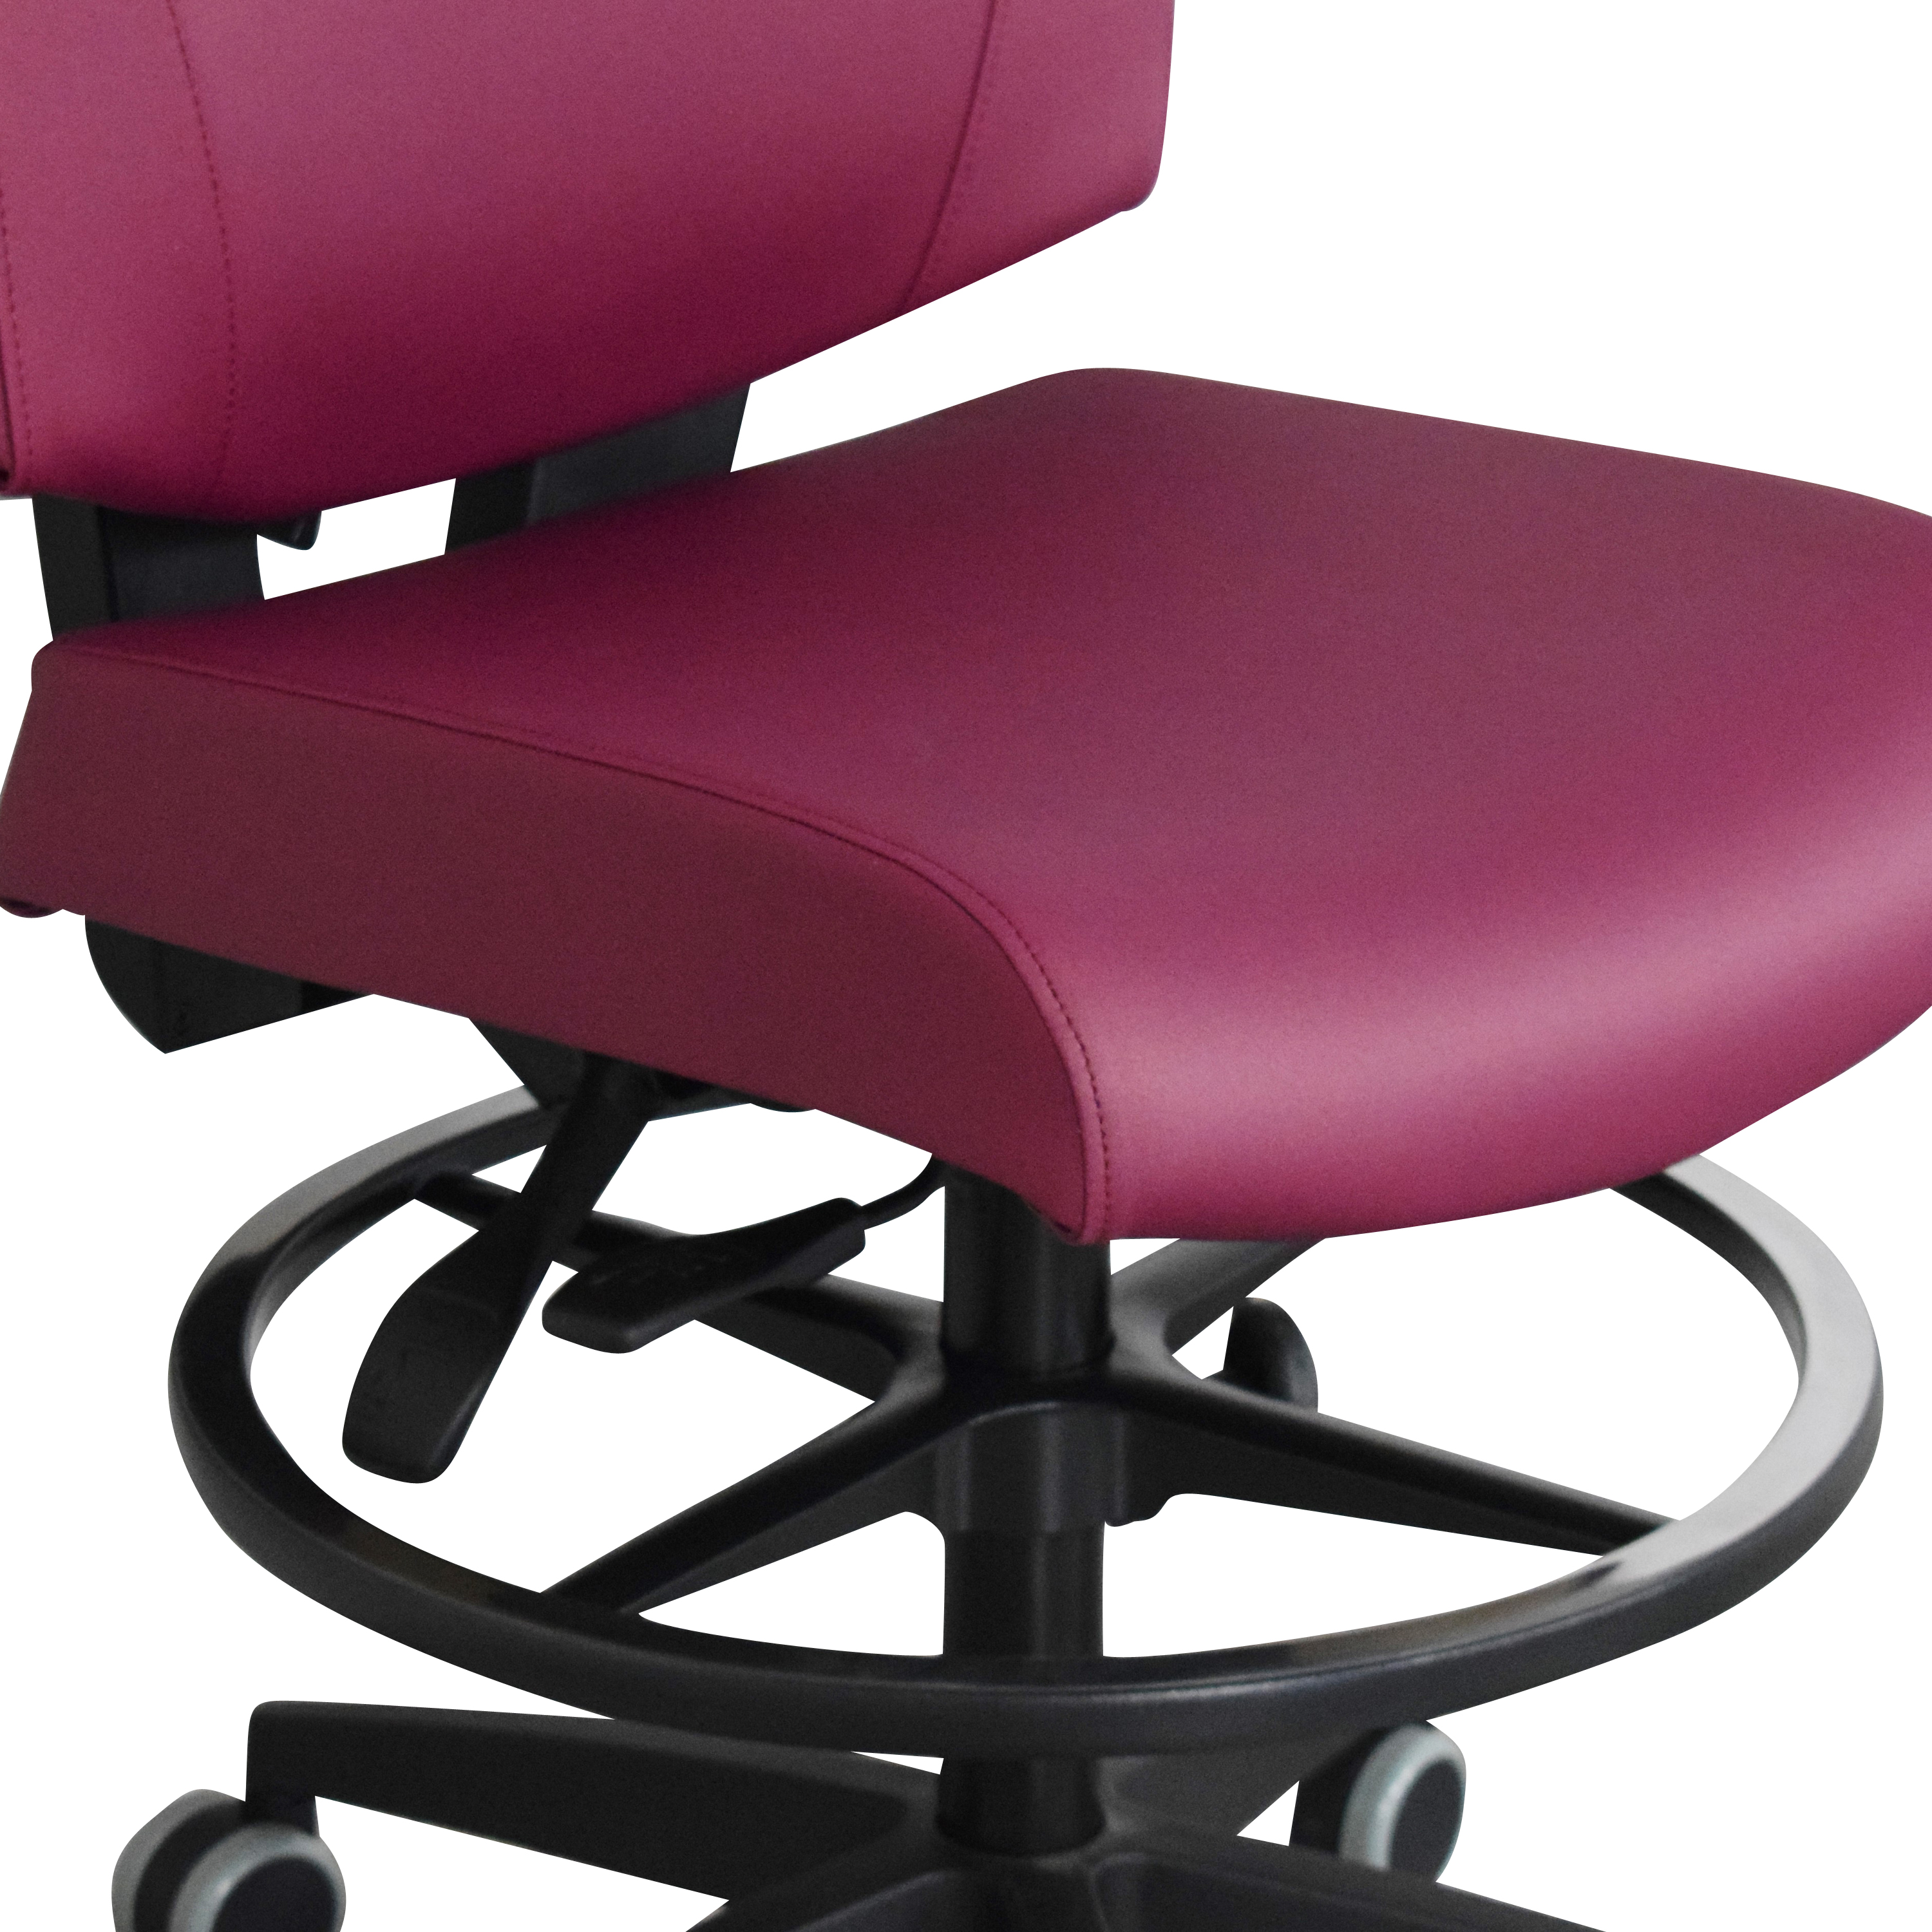 Global Furniture Group G1 Ergo Select Armless Medium Back Chair  / Chairs